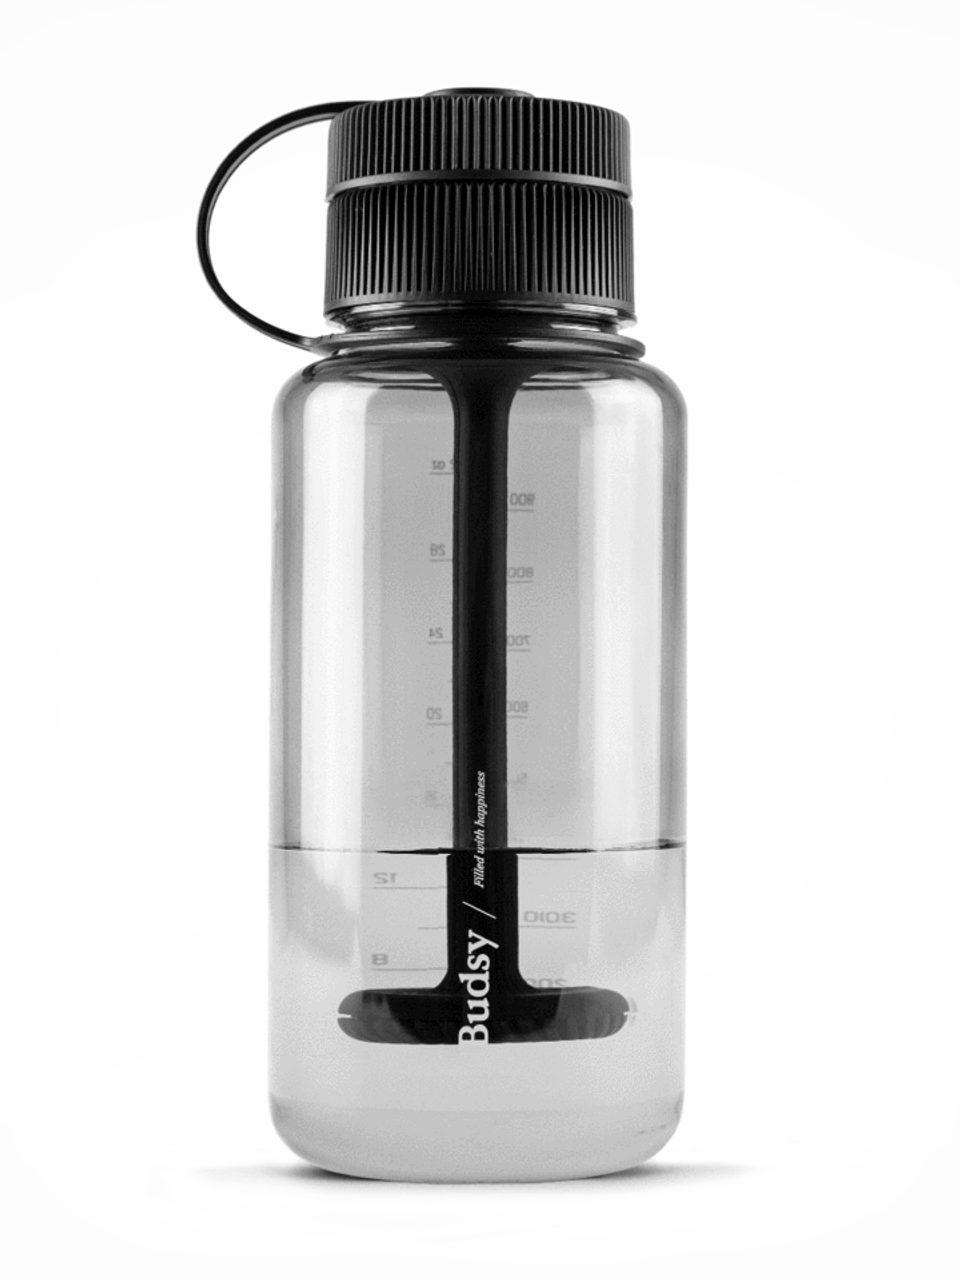 Puffco Puffco Budsy Water Bottle/Water Pipe at The Cloud Supply